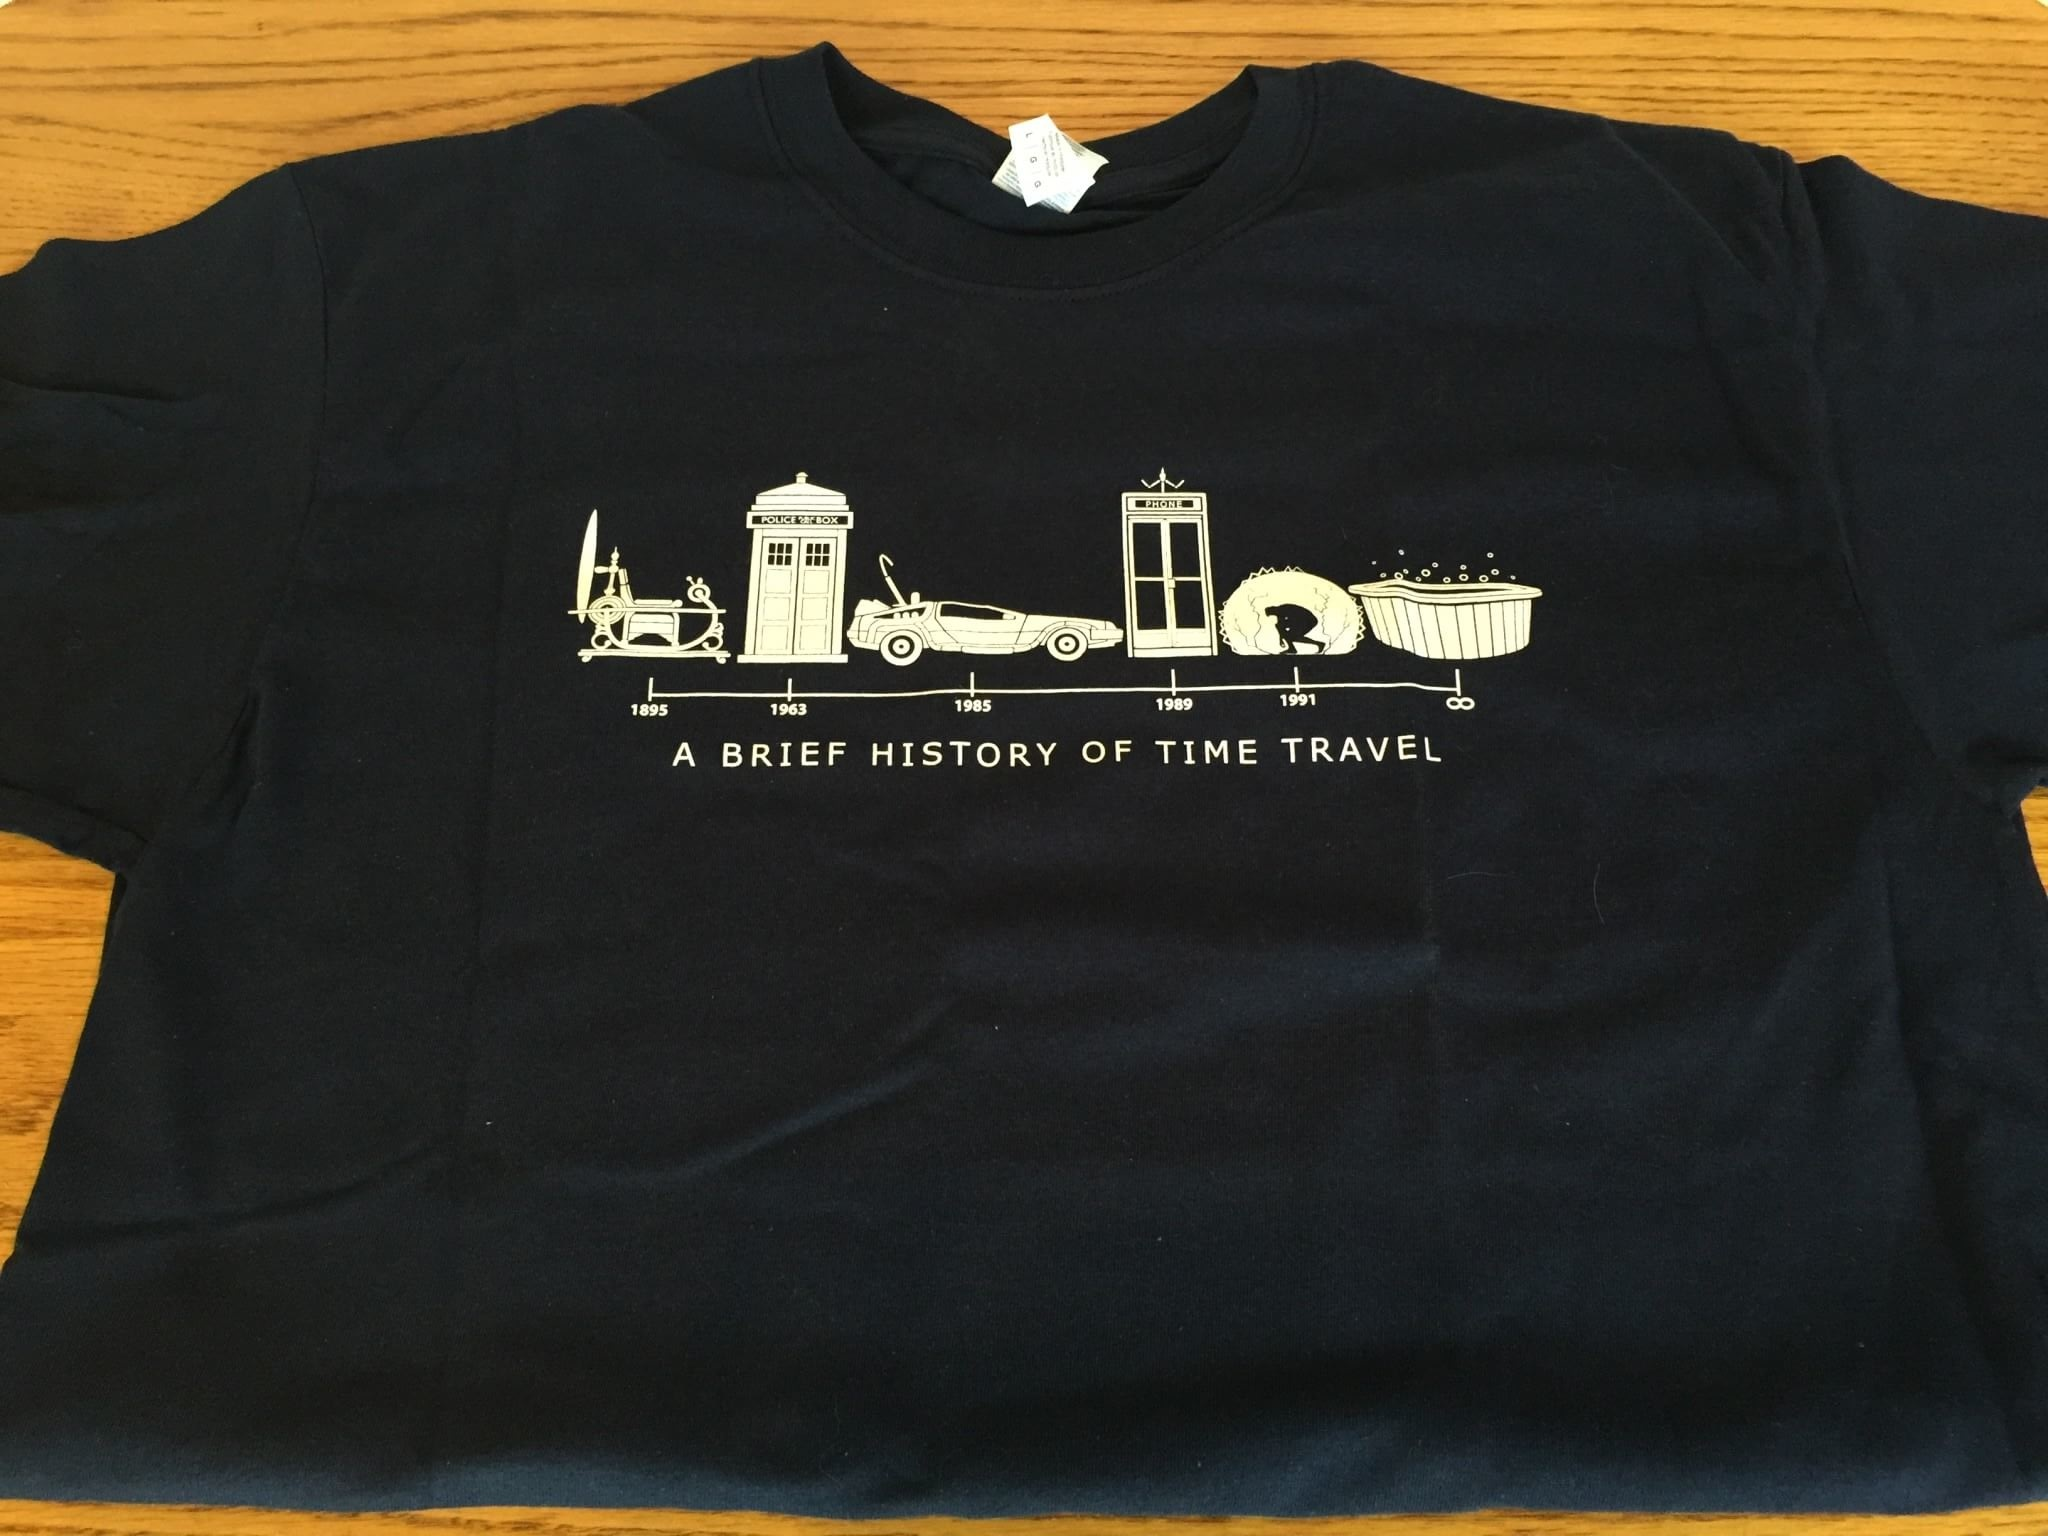 Geek Fuel Monthly Mystery Box January 2016 Review Coupon Hello Circuit Board Tshirt Computer Tee Mens Shirt A Brief History Of Time Travel T What Is Your Favorite Mode Tardis Hot Tub